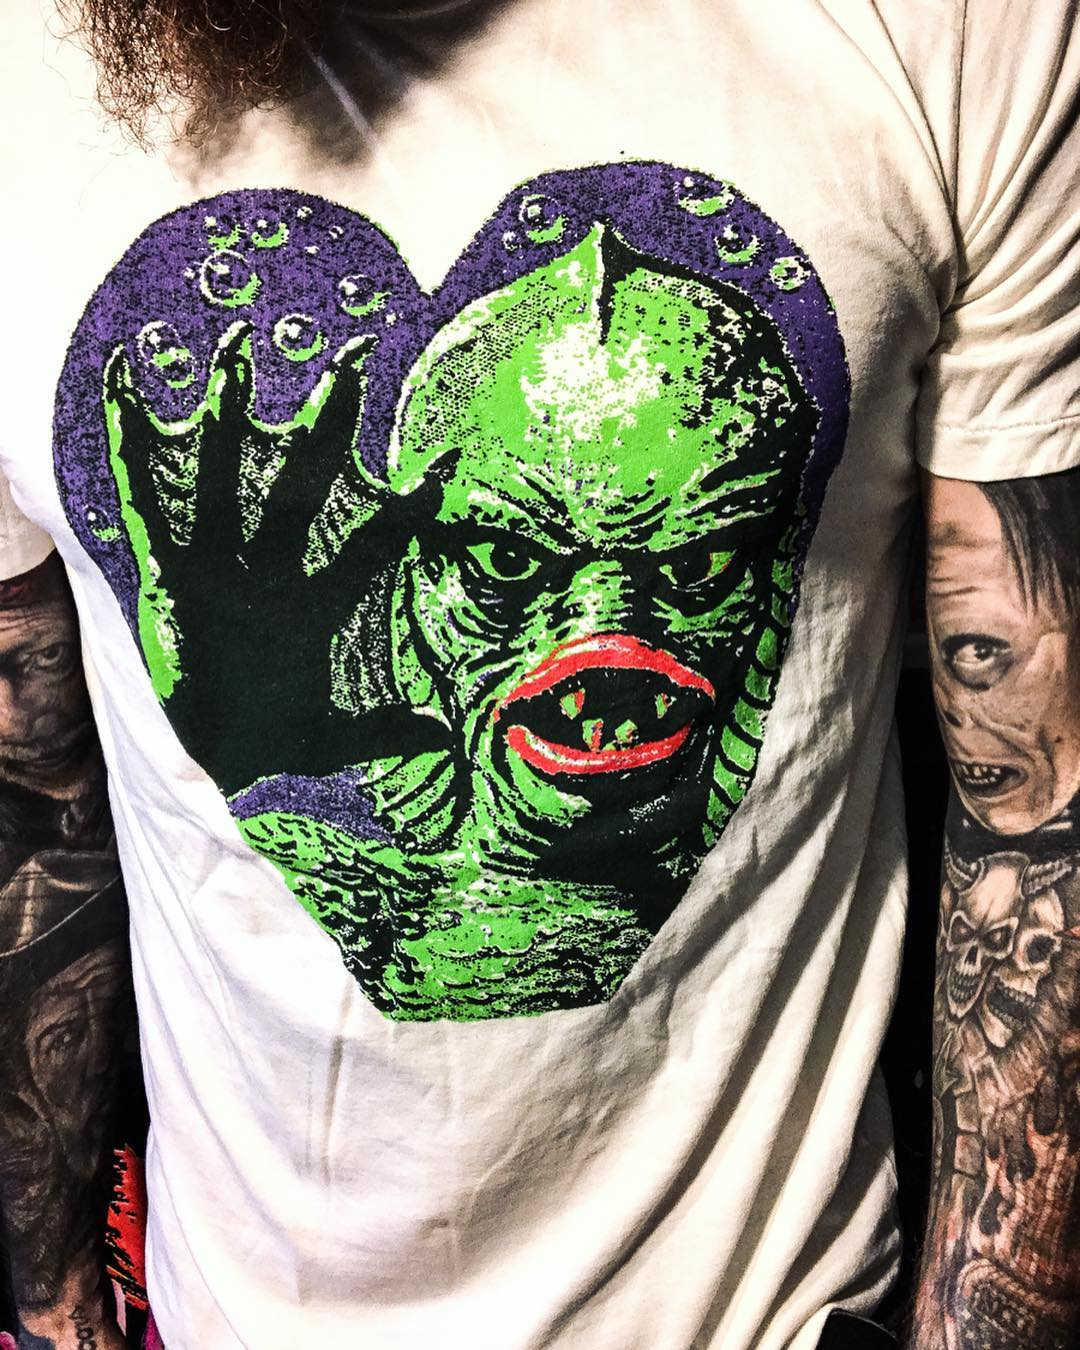 Valentine's Day CREATURE FROM THE BLACK LAGOON Tee from Local Boogeyman